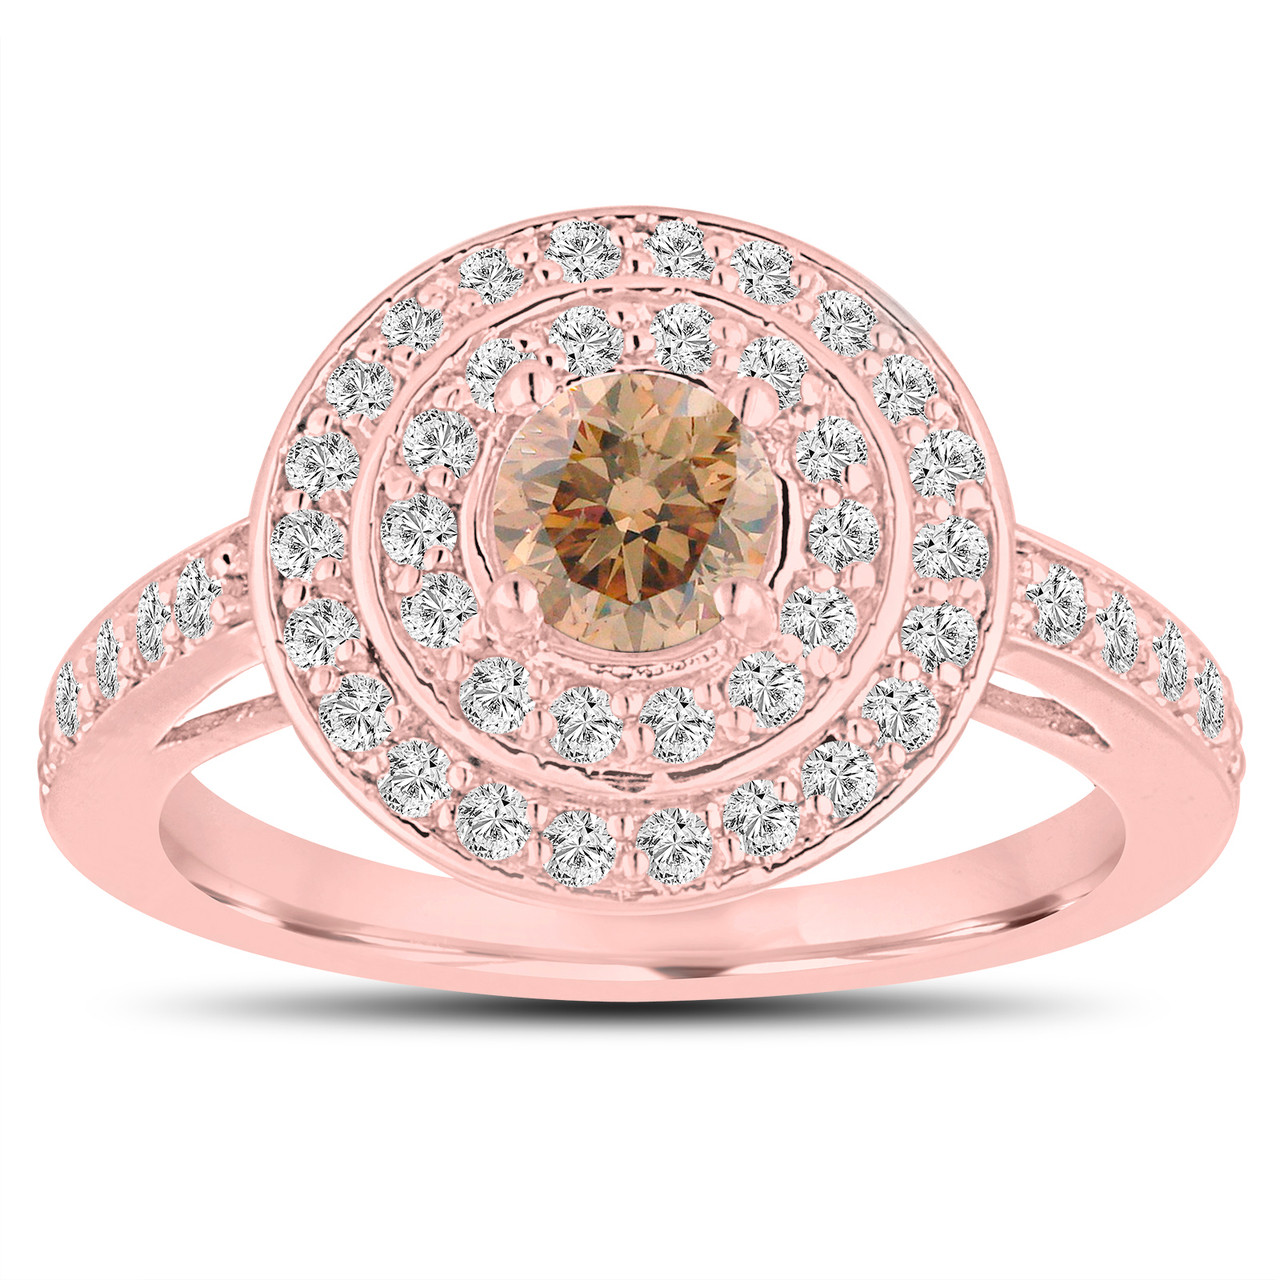 Fancy Champagne Diamond Engagement Ring 14K Rose Gold ...